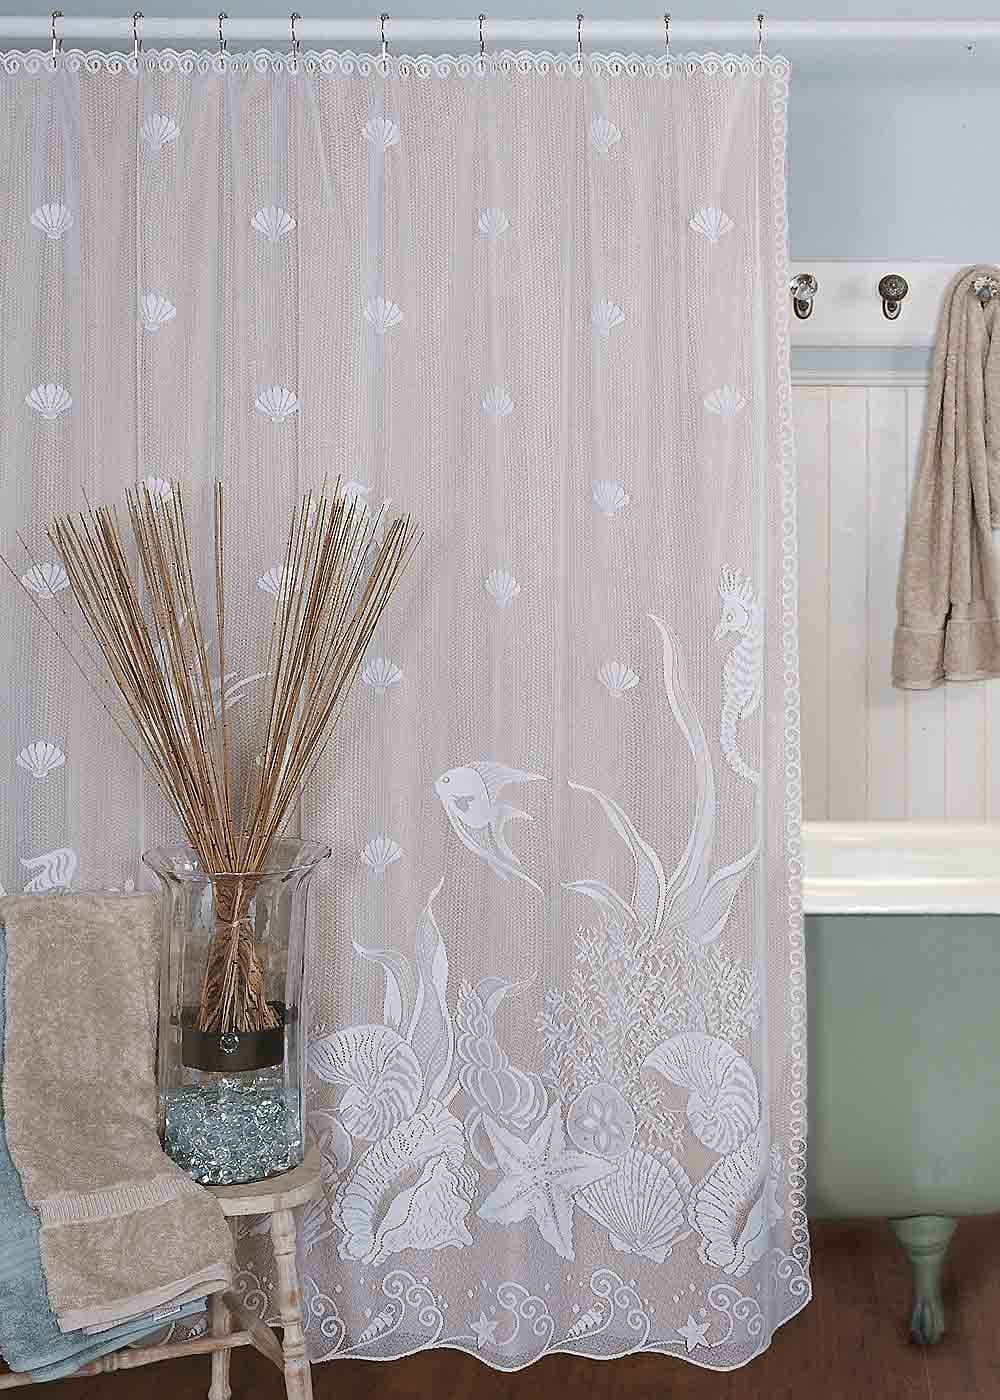 Genial Coastal Shower Curtains